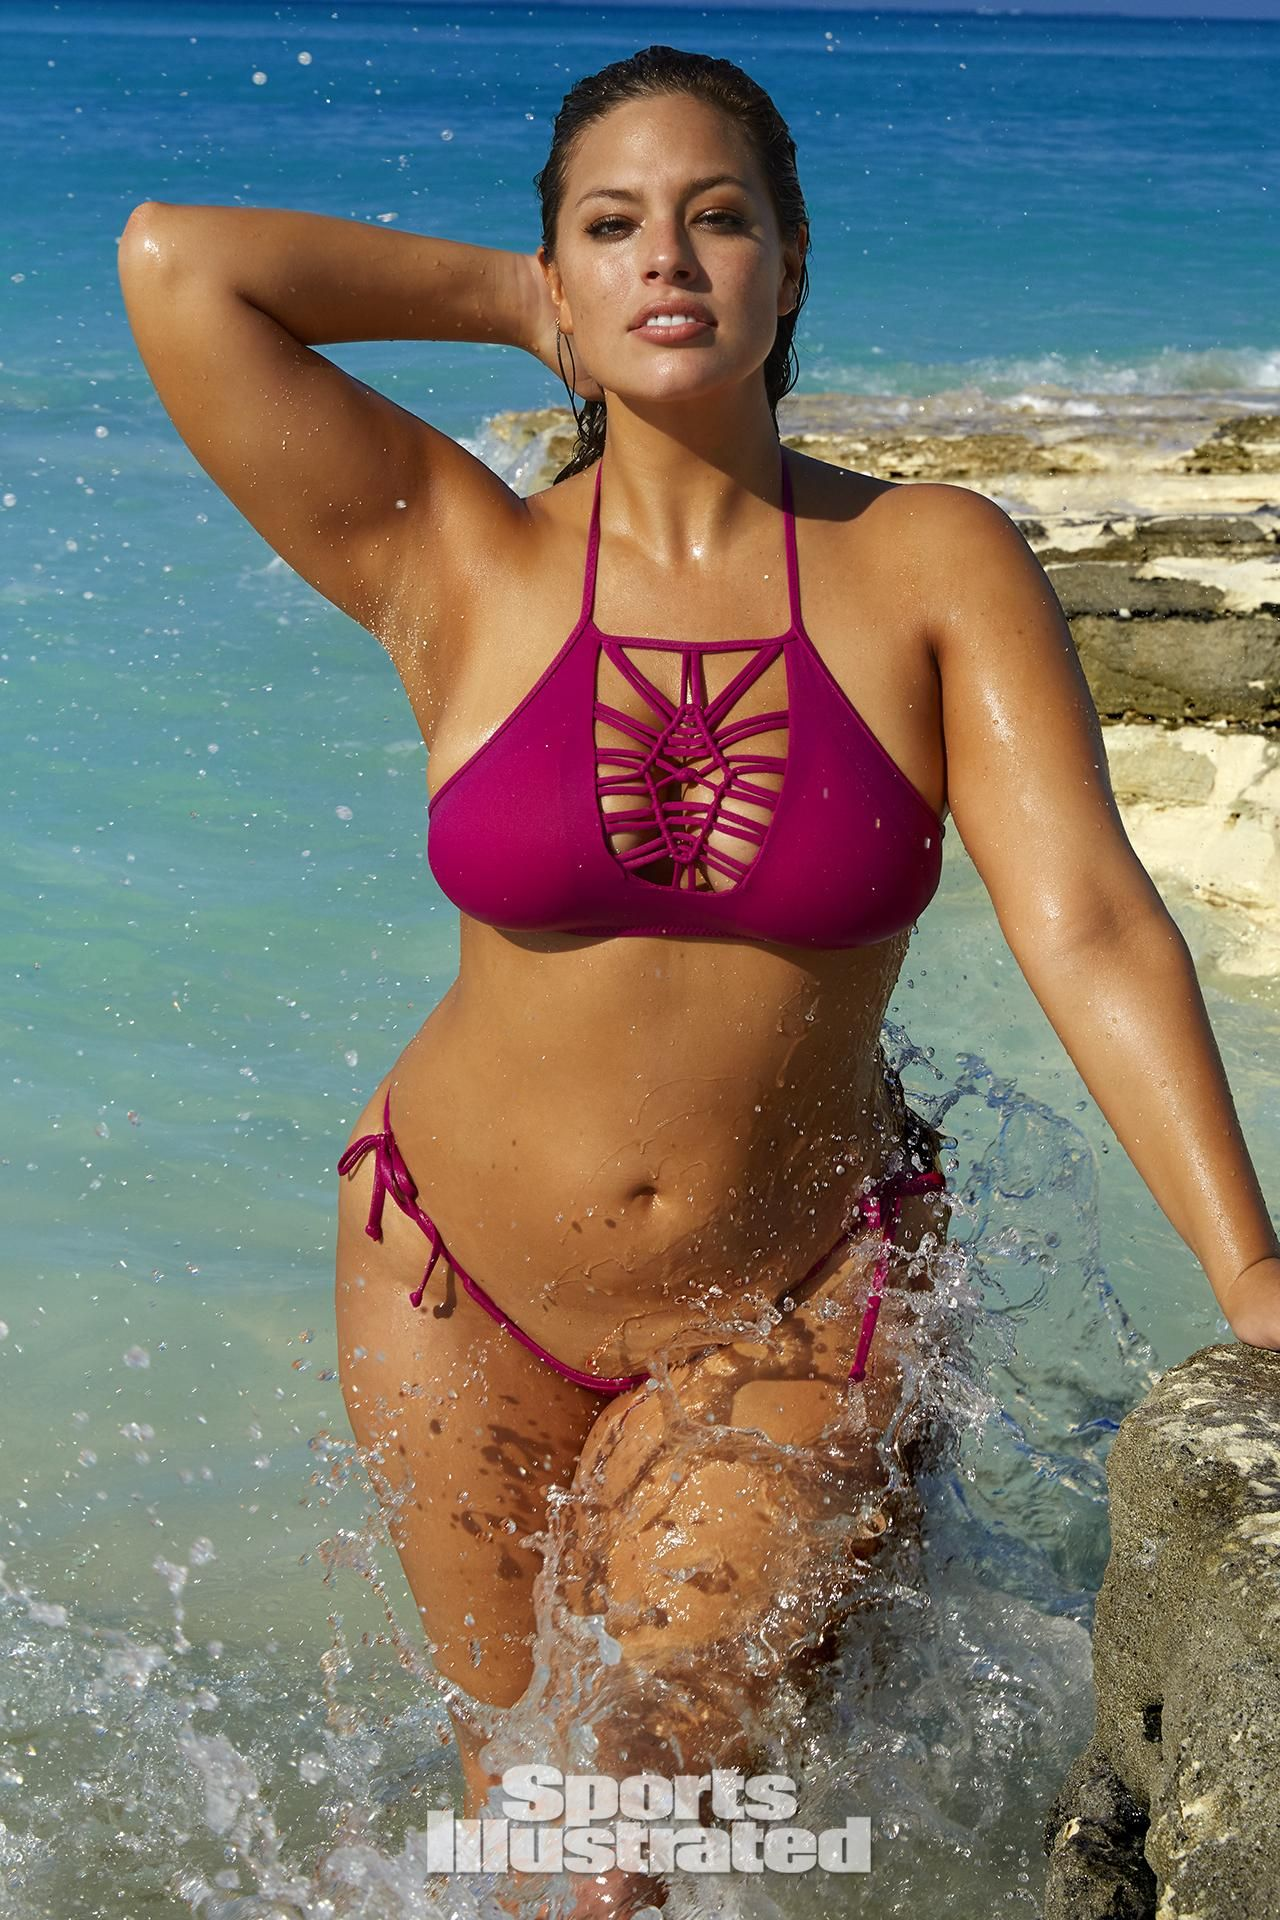 Pin By Sgs On Ashley Graham Sports Illustrated Swimsuit 2016 Sports Illustrated Swimsuit Issue Swimsuit Edition